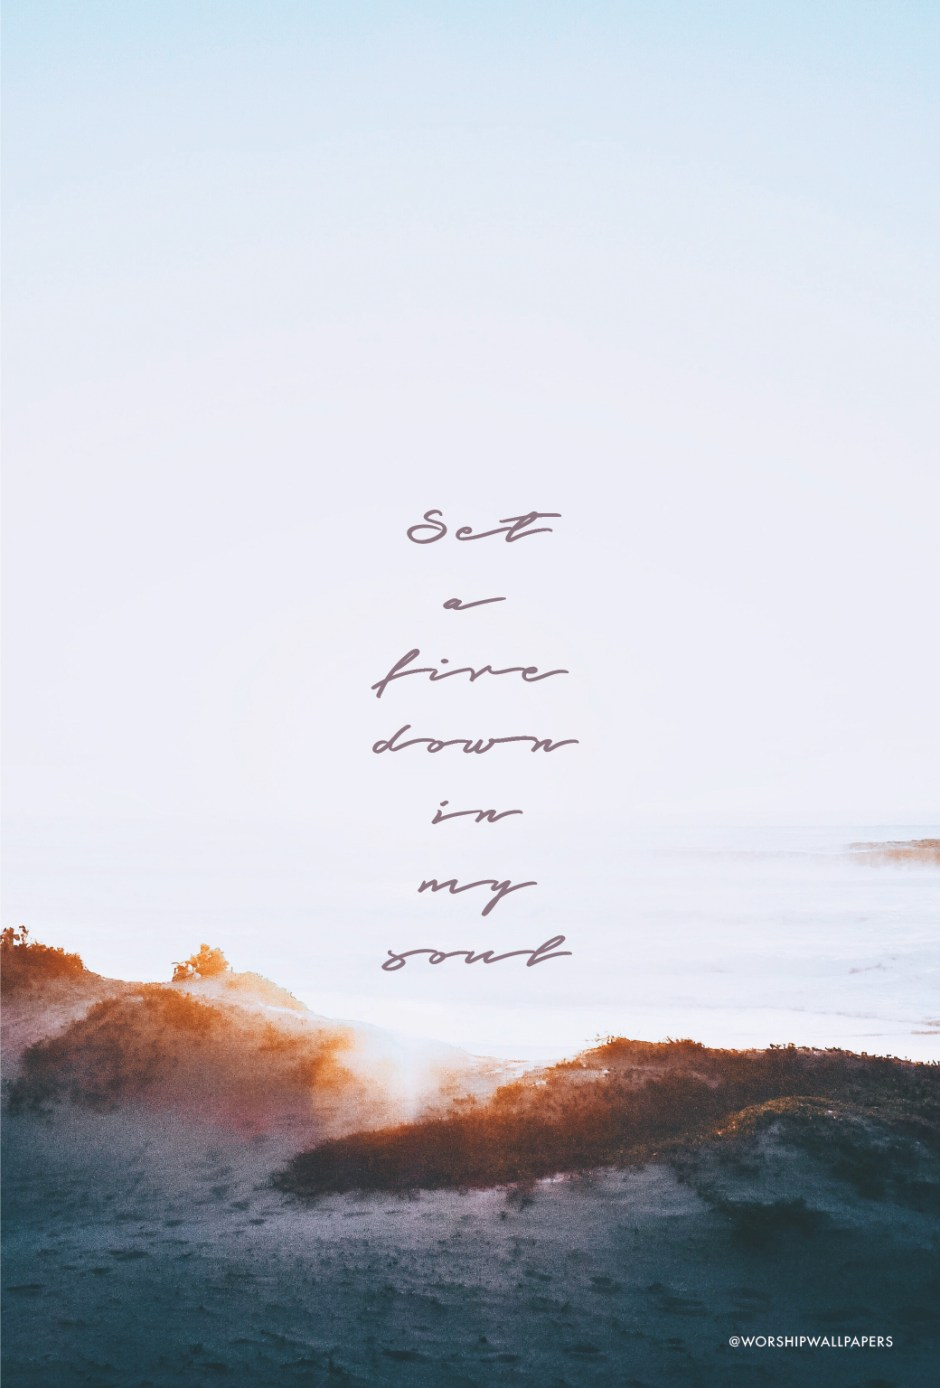 Cute Lock Screen Wallpapers Hd Set A Fire United Pursuit Ft Will Reagan Worship